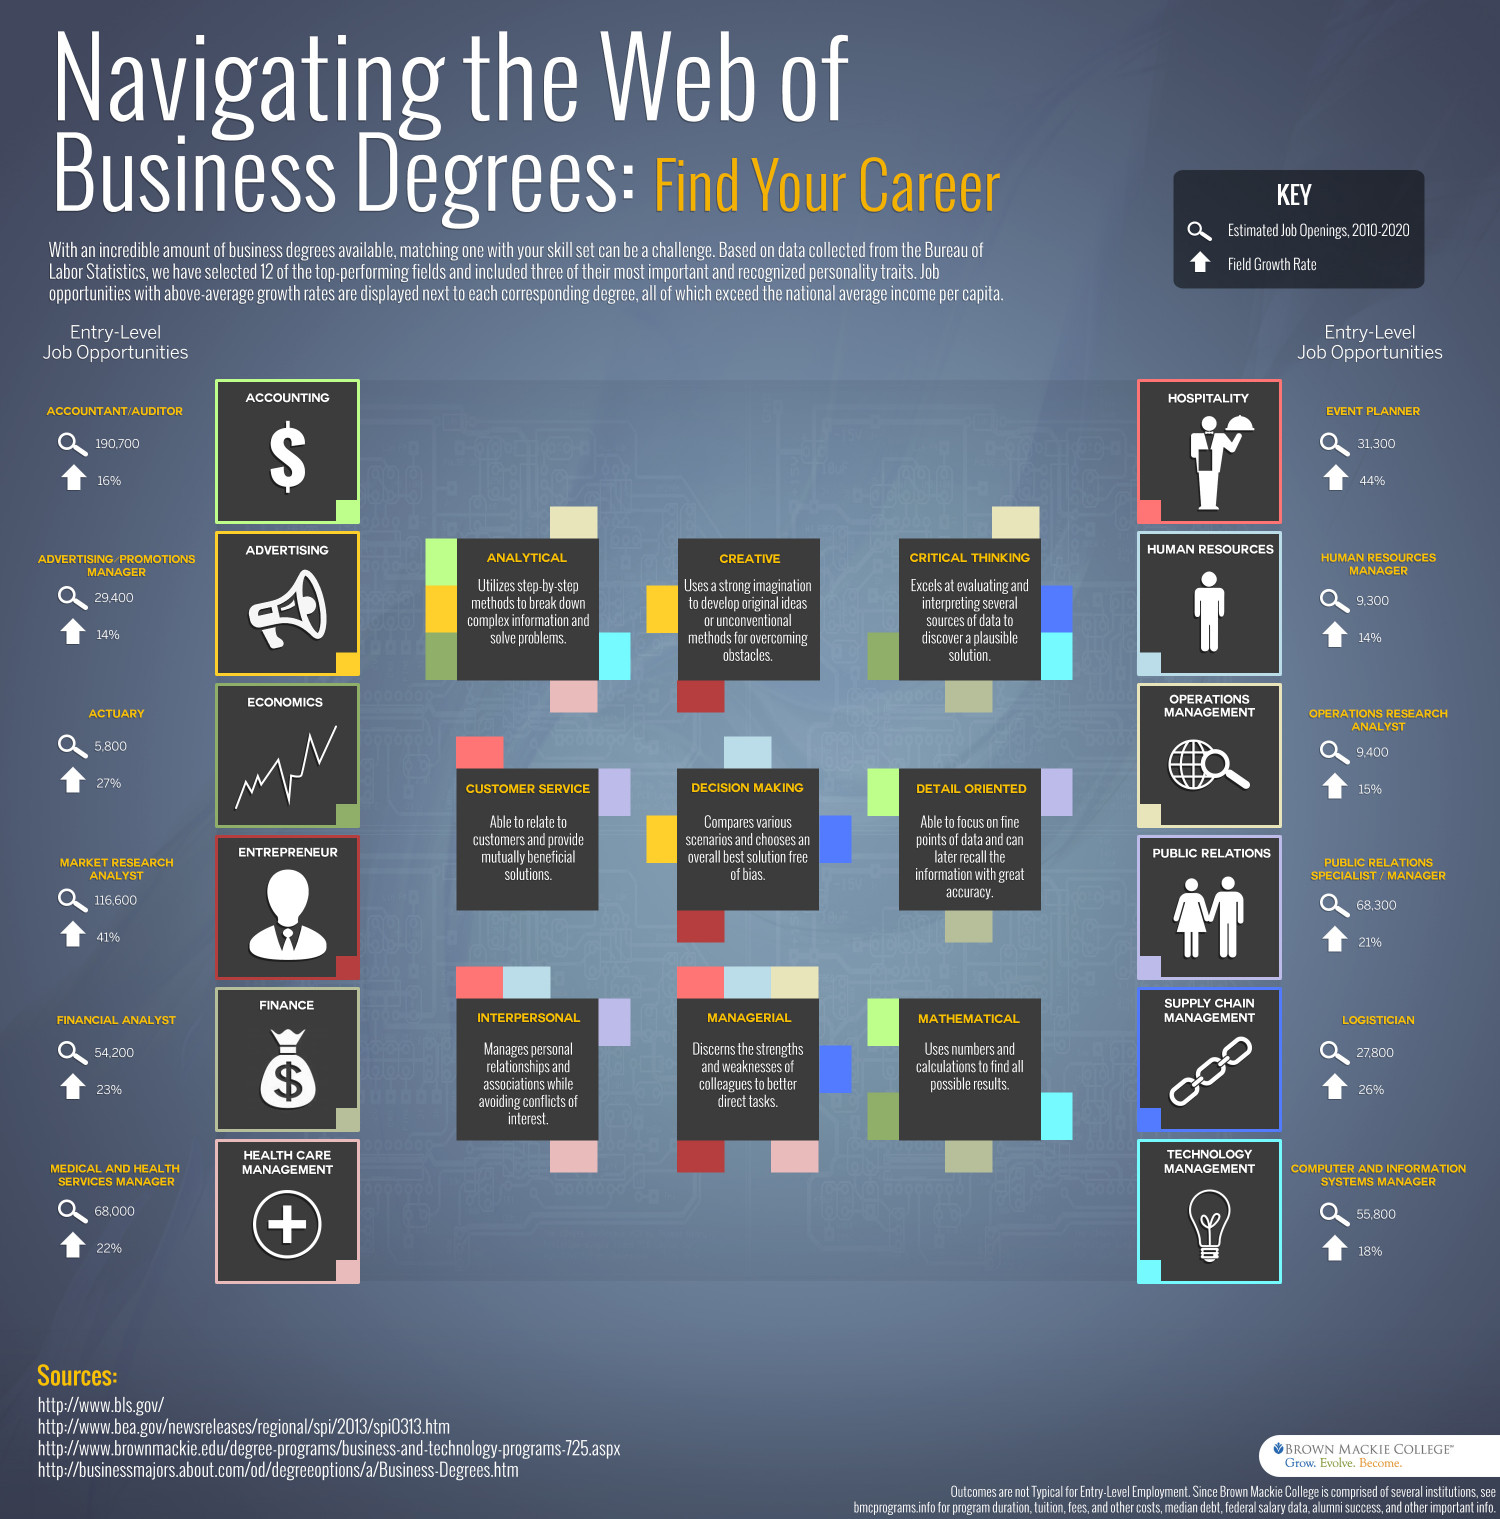 Navigating the Web of Business Degrees Infographic